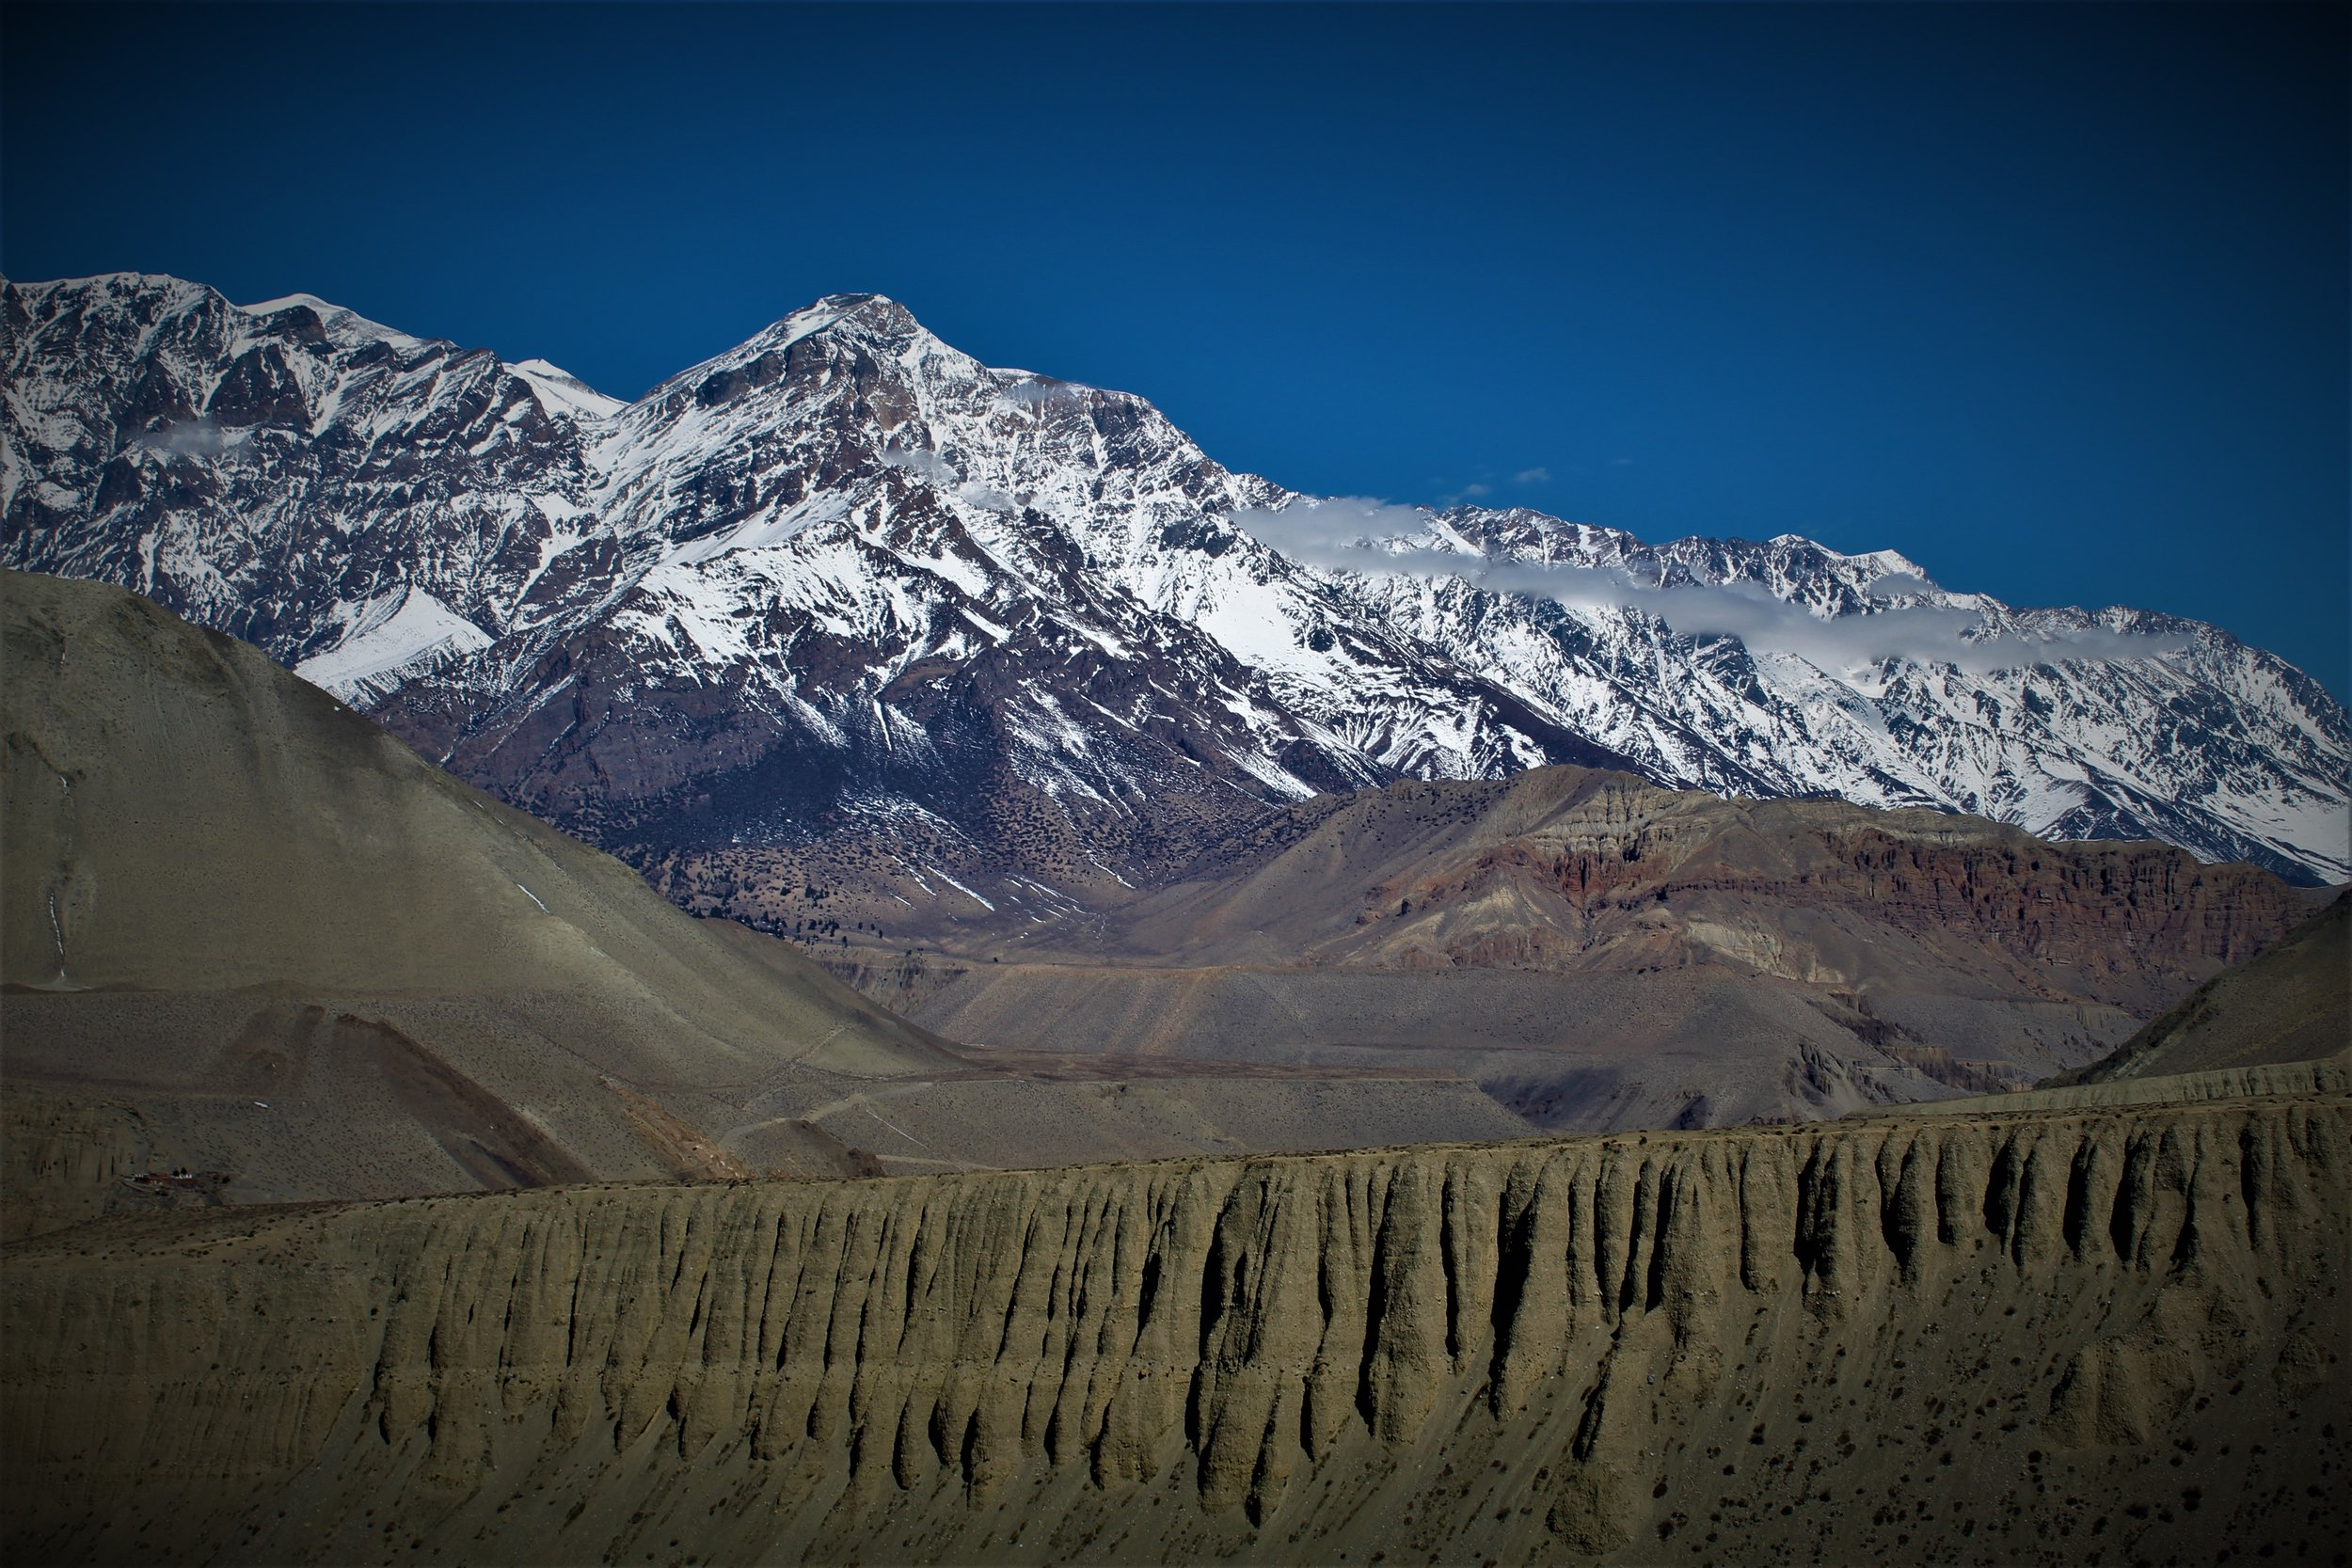 Lower Mustang, Nepal. Altitude approx. 10,000 ft above sealevel